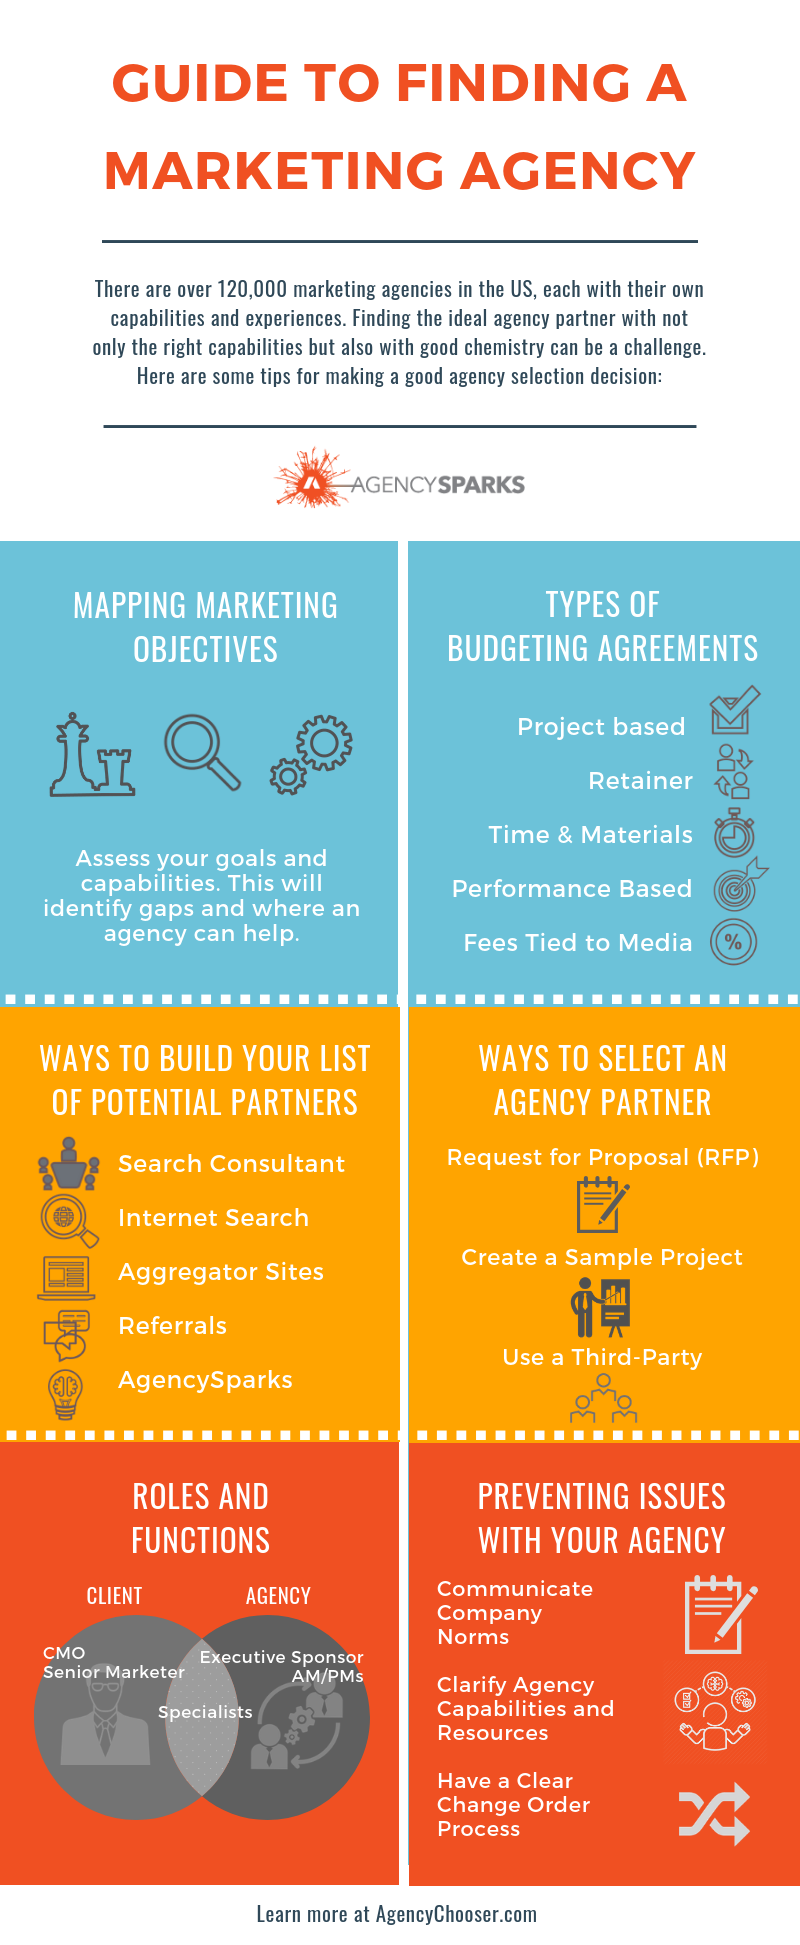 The Guide to Finding the right Marketing Agency includes tips to select and onboard a marketing agency, insights on how to maintain a sustainable relationships, and budget and brief templates to ease operations and functions.    Dive deeper and download the free guide on AgencyChooser.com